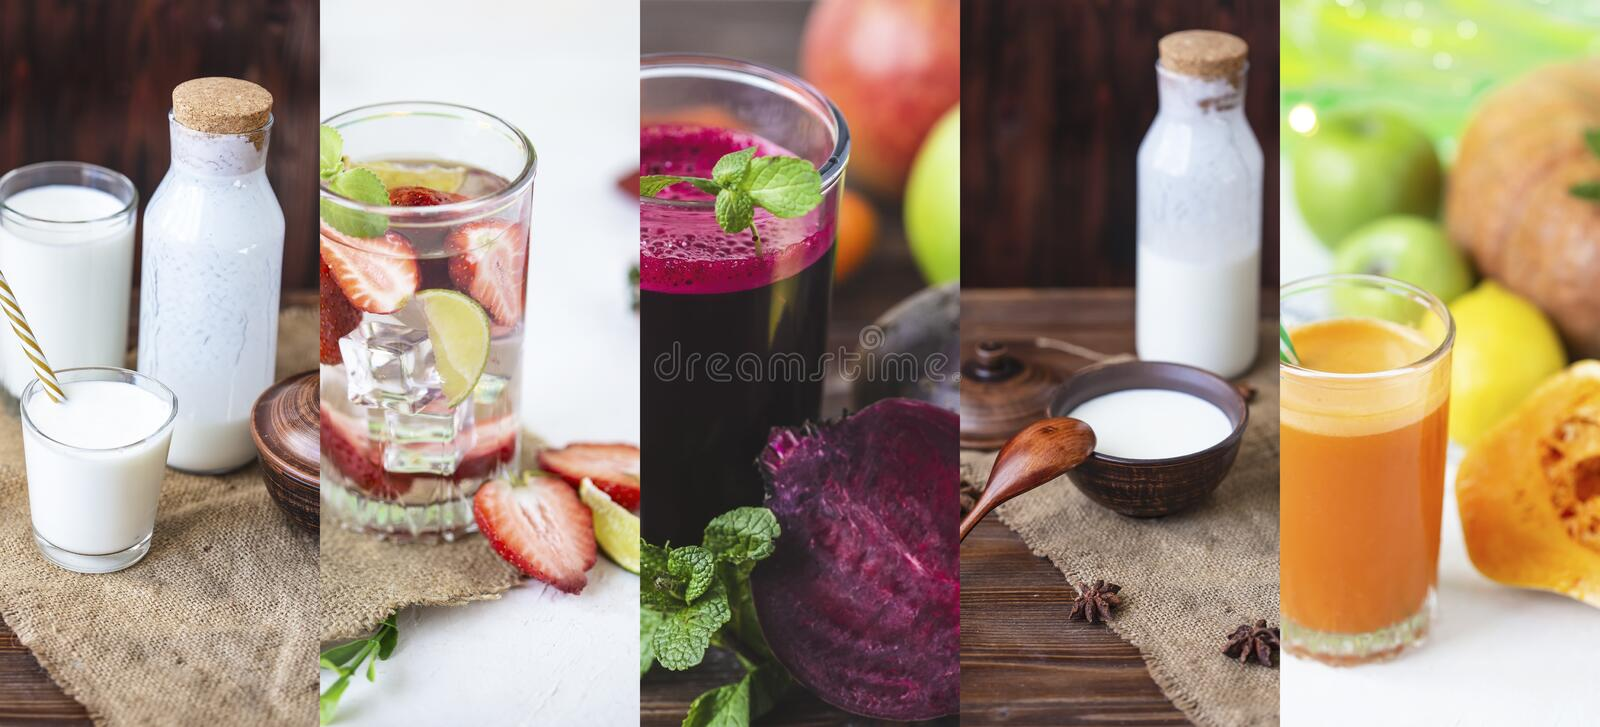 Food collage from photo of healthy drinks. Kefir, yogurt,smoothie, lemonade, freshly squeezed juices. On a light background stock photo